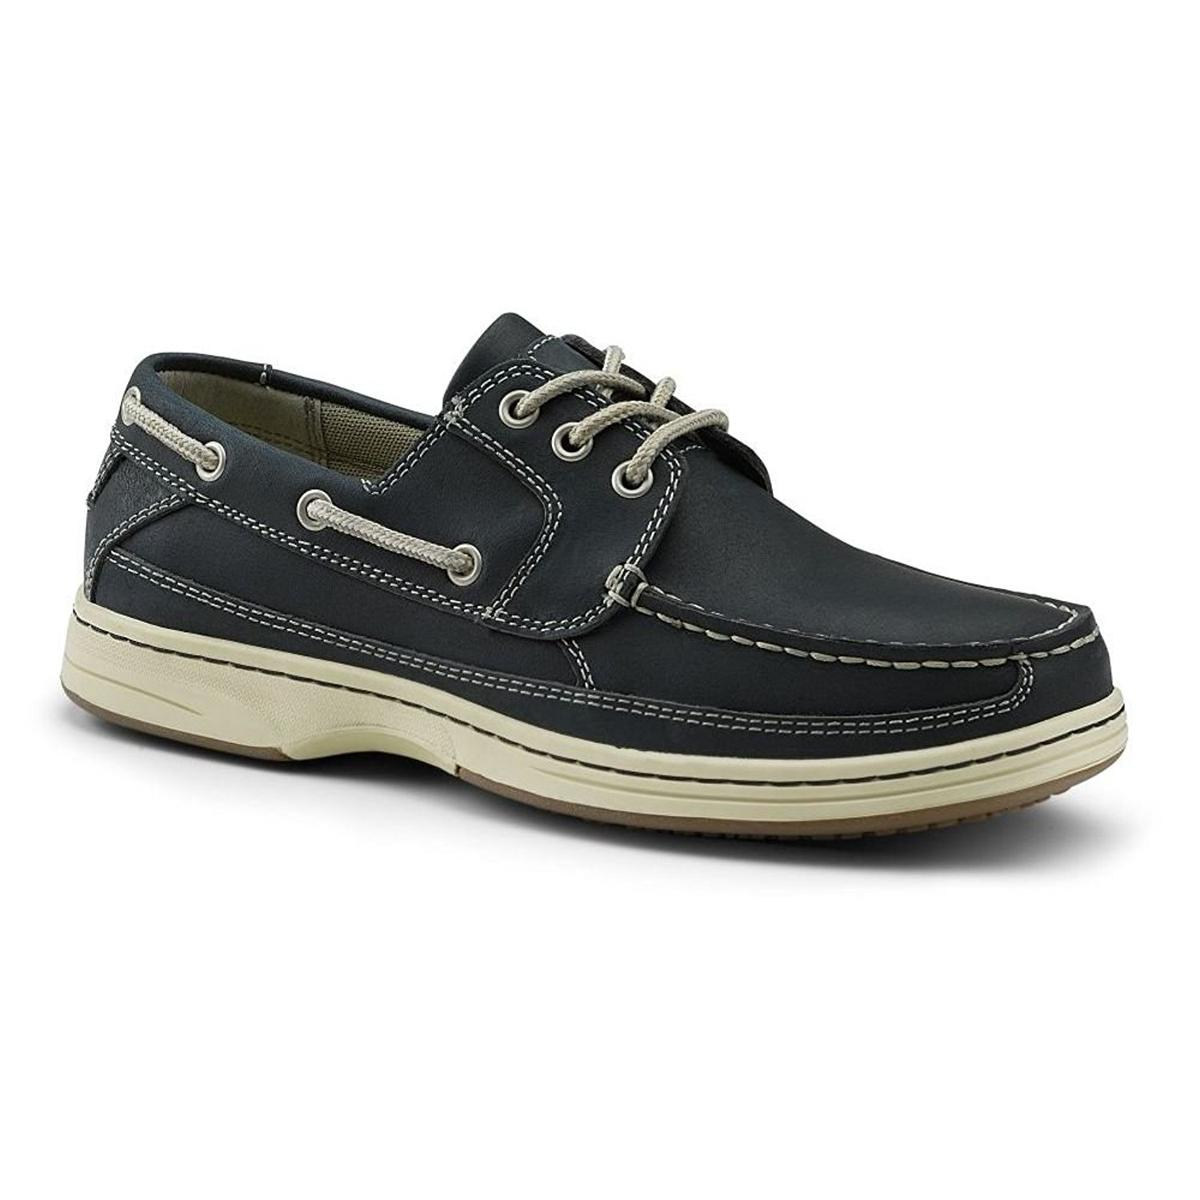 Dockers Pier Mens Navy Boat Shoes by Dockers